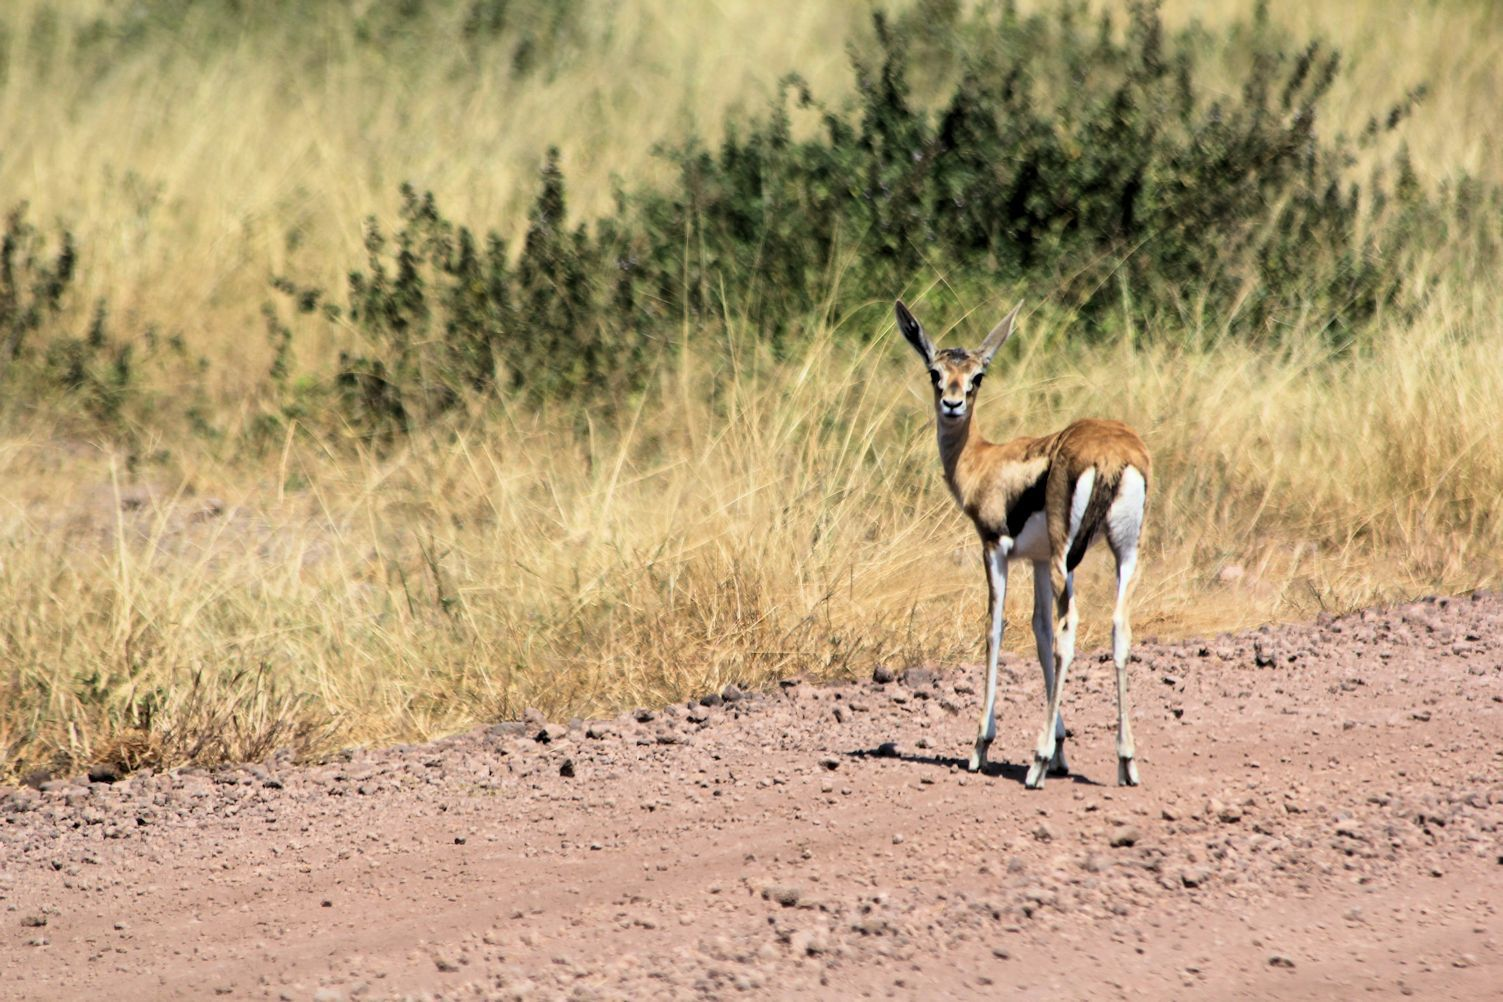 Grants gazelle in the two first pictures and Thomson's gazelles on the third one